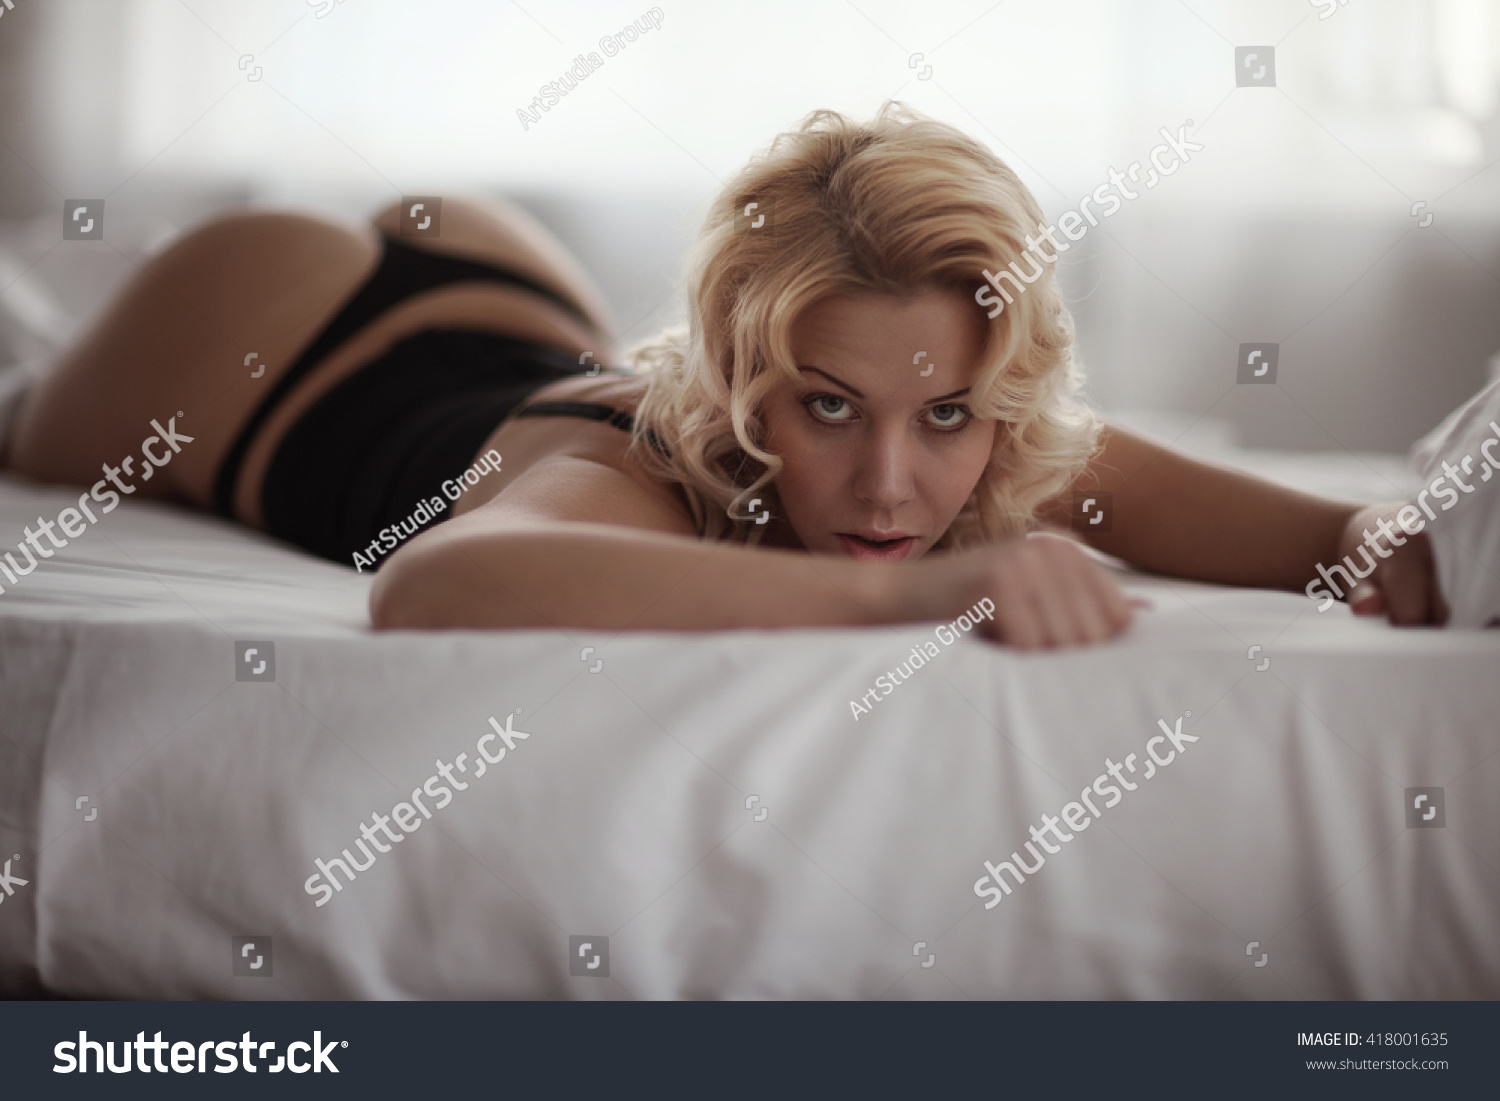 The lying on bed showing ass